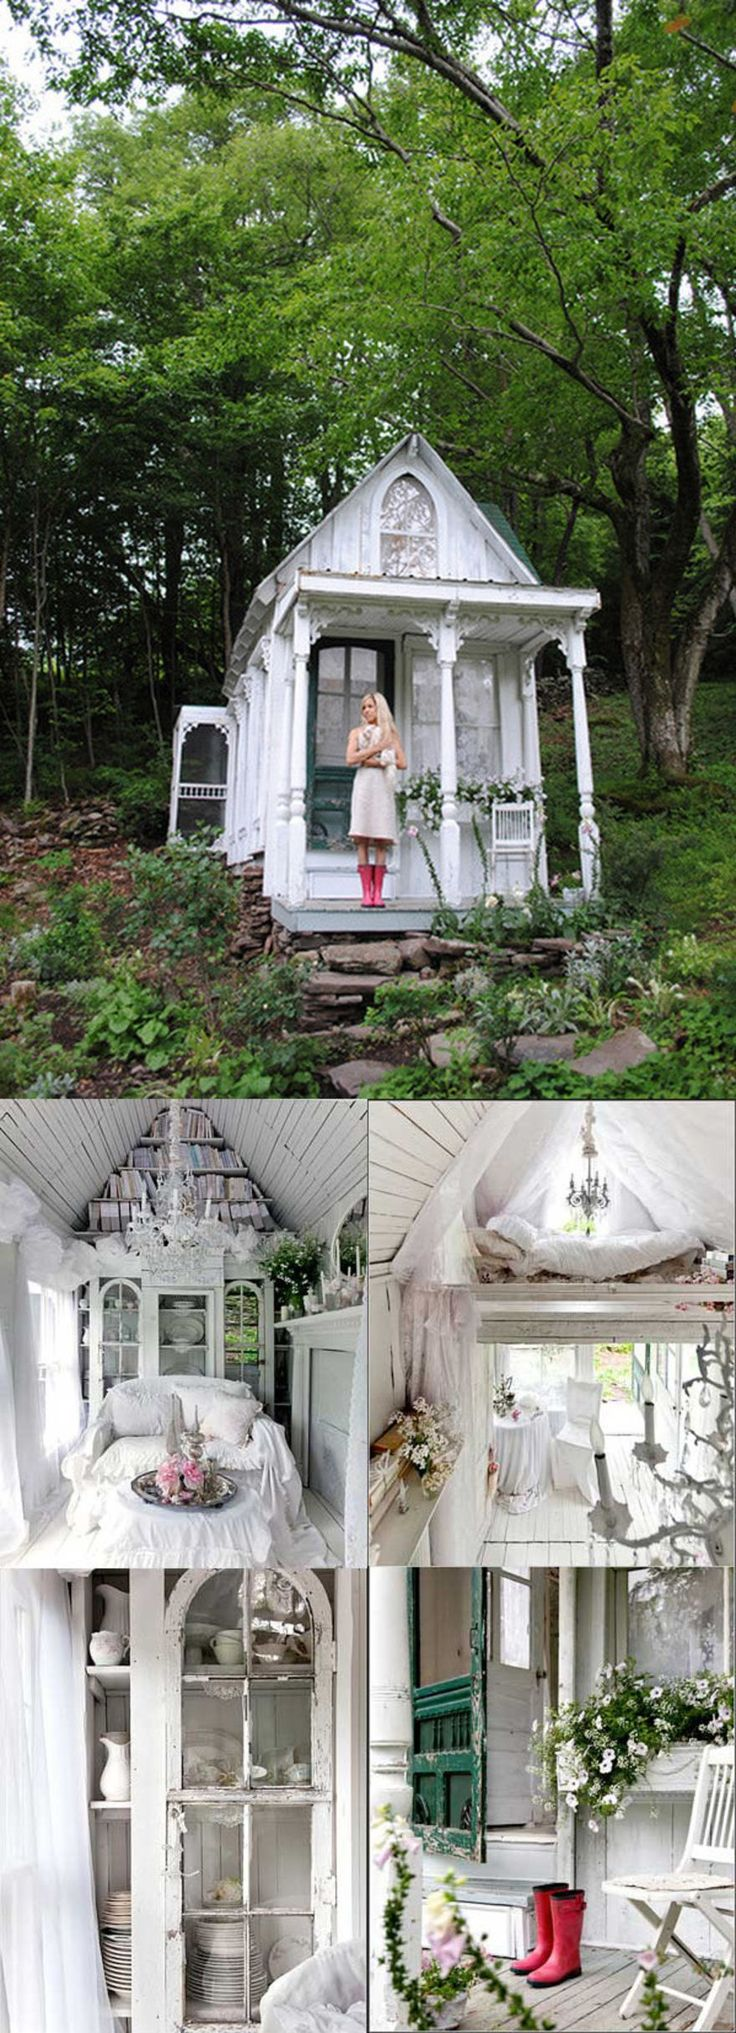 53 best she shed images on pinterest garden sheds potting sheds